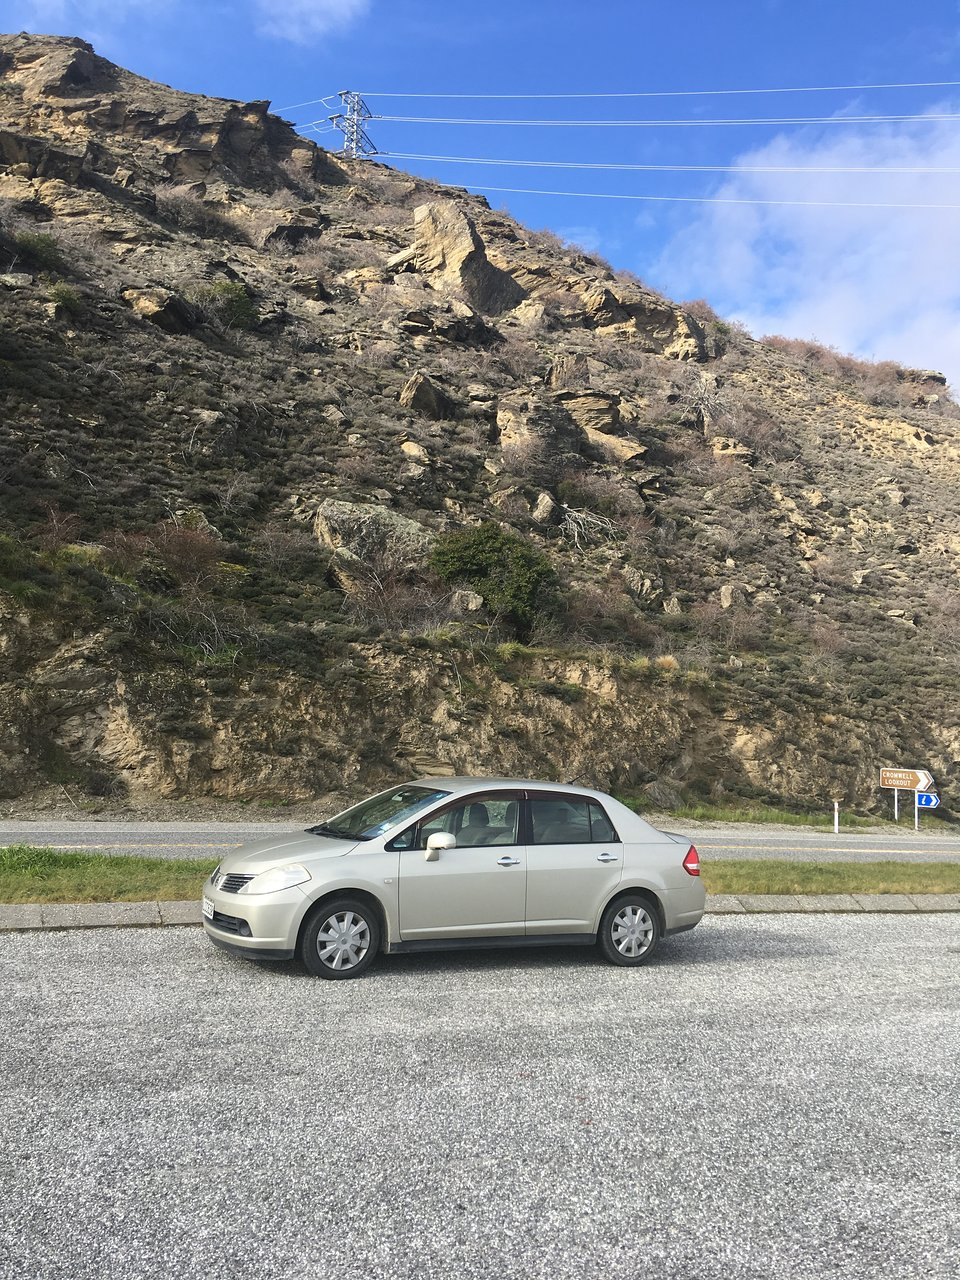 Scotties Rental Cars Frankton 2019 All You Need To Know Before